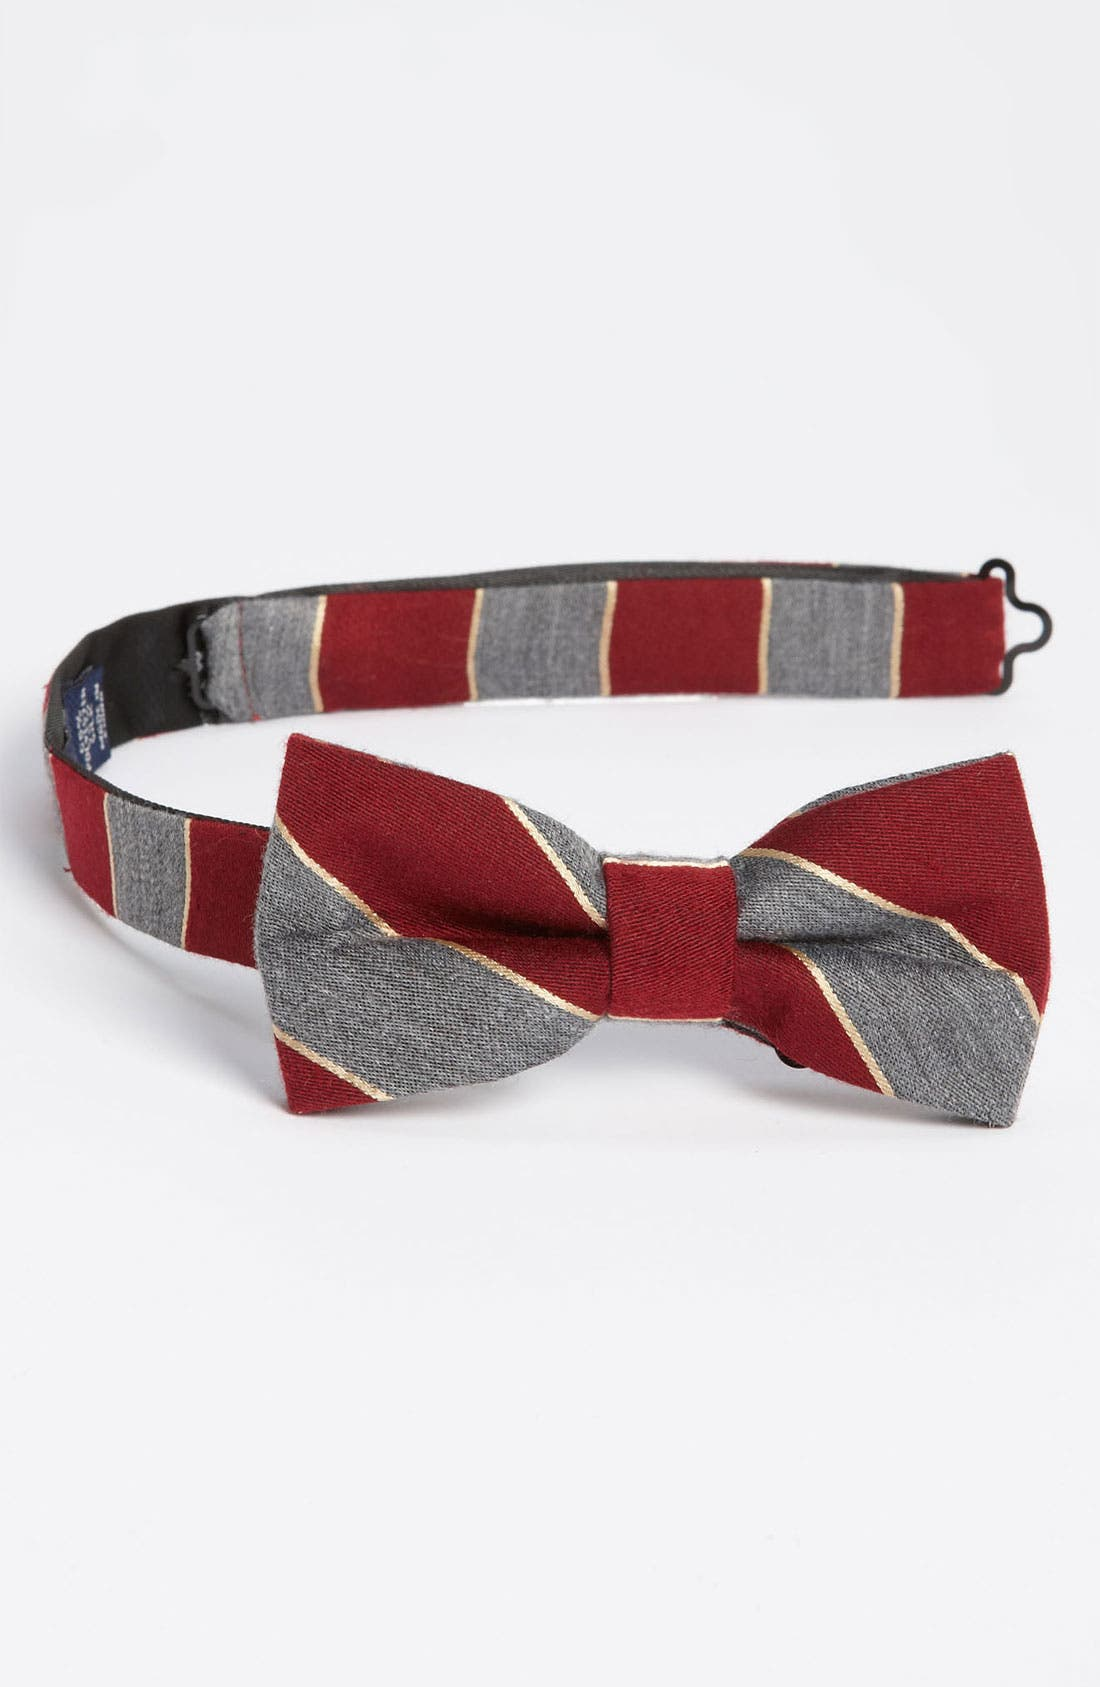 Alternate Image 1 Selected - 1901 Bow Tie